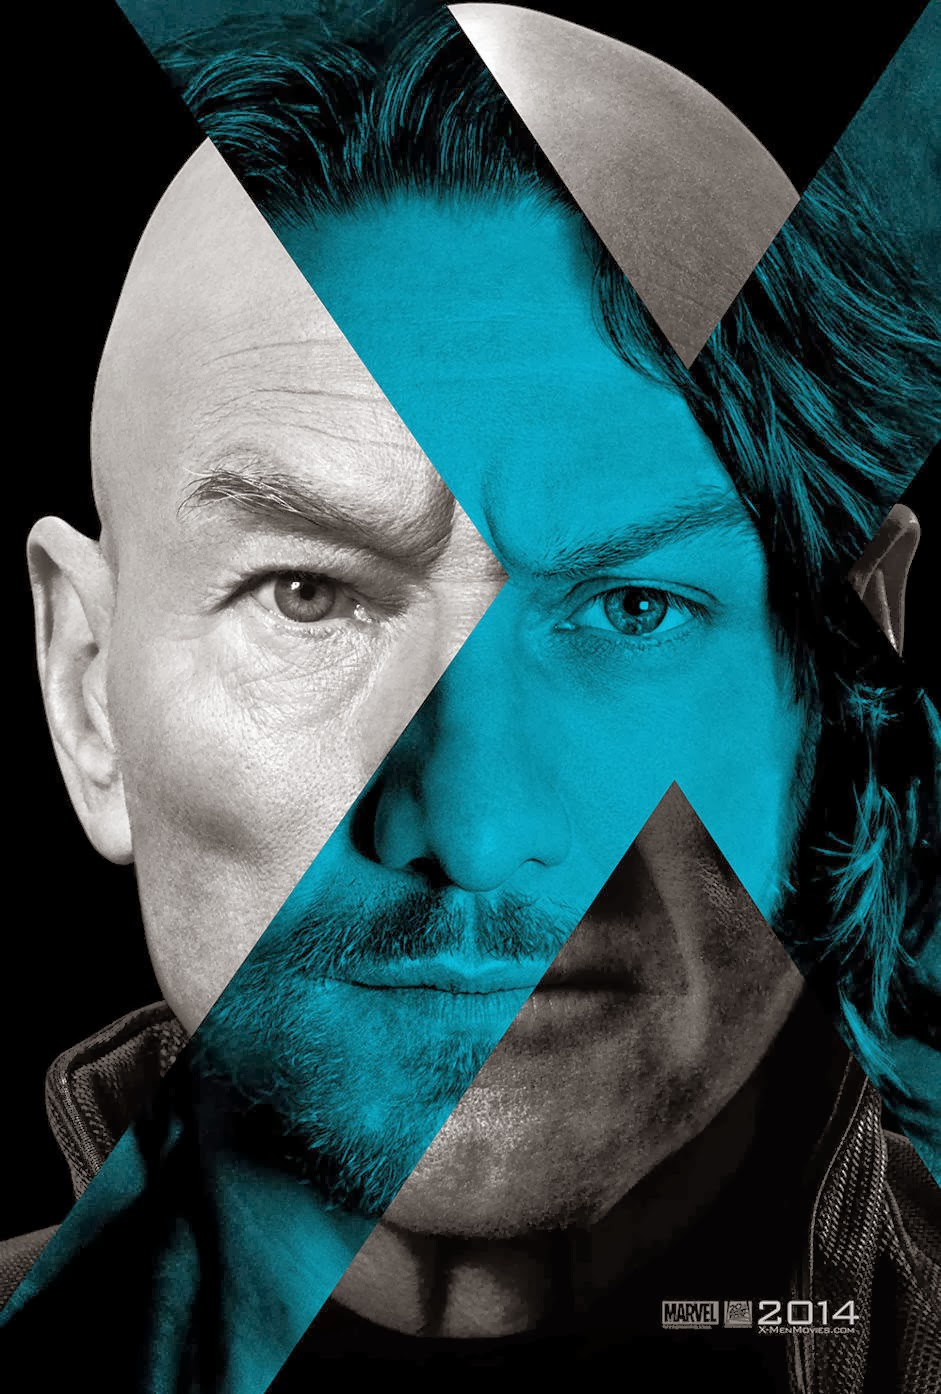 X-Men: Days of Future Past movieloversreviews.filminspector.com